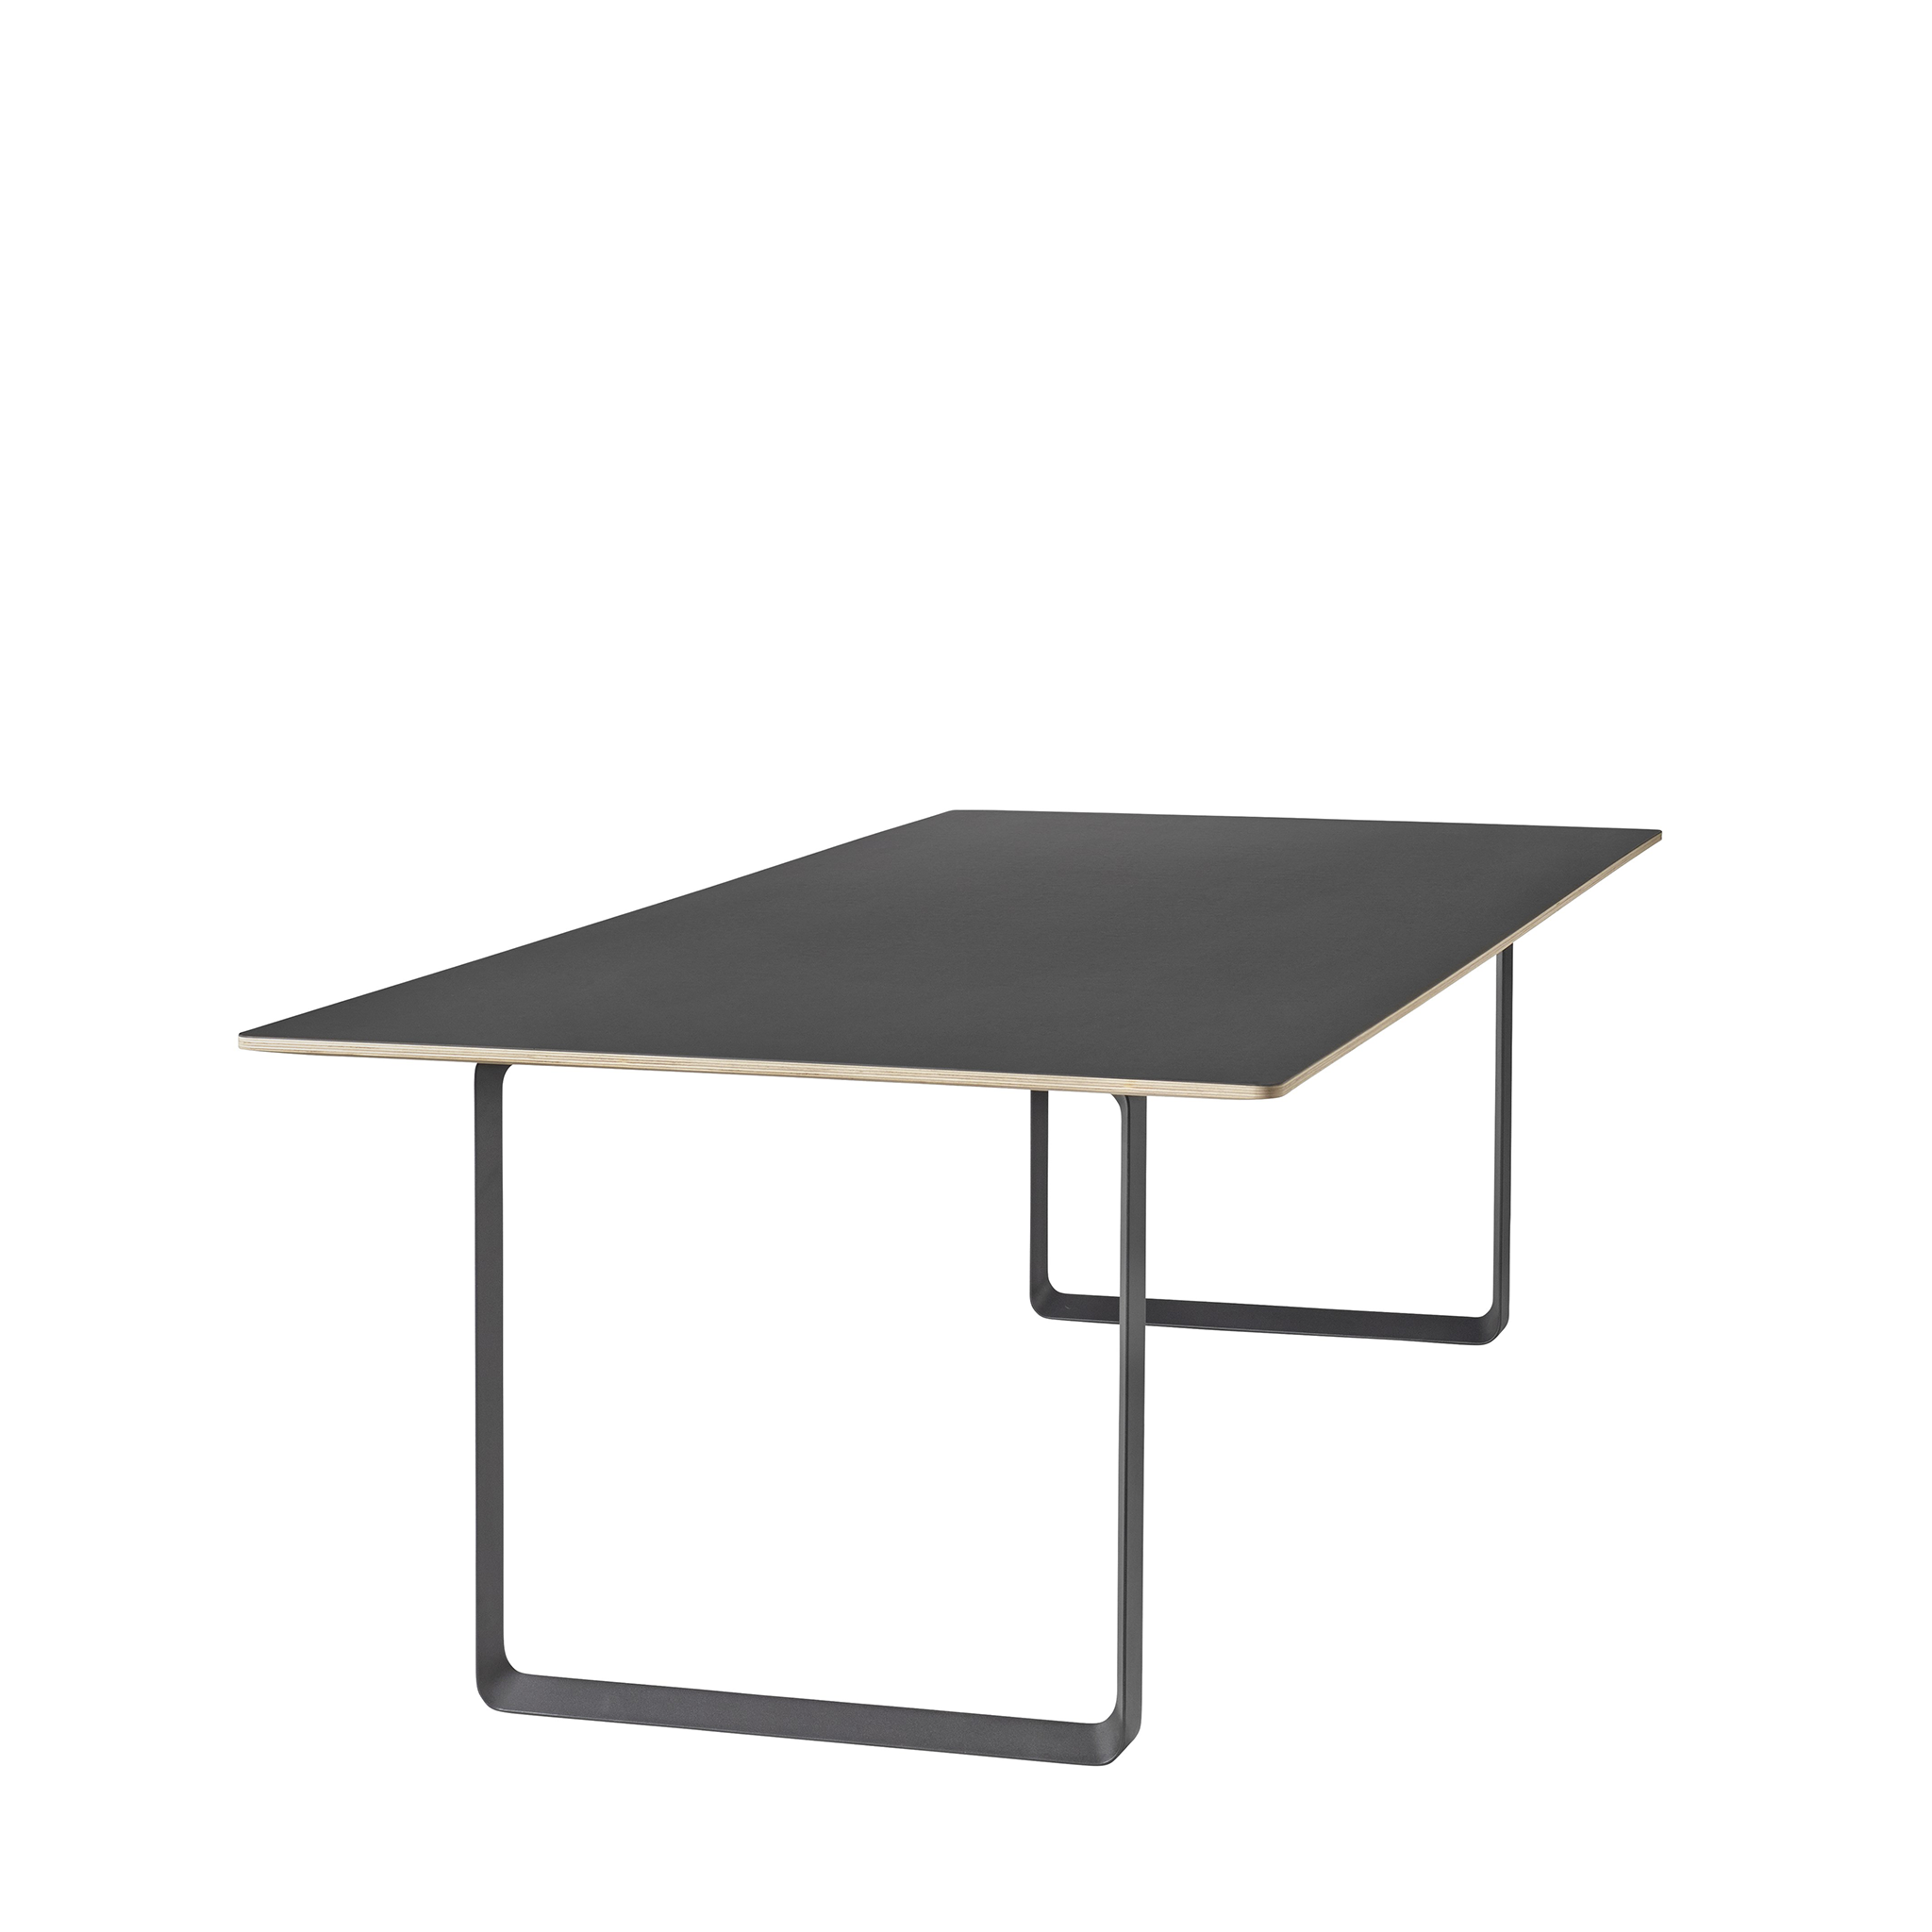 70/70 Table by Muuto